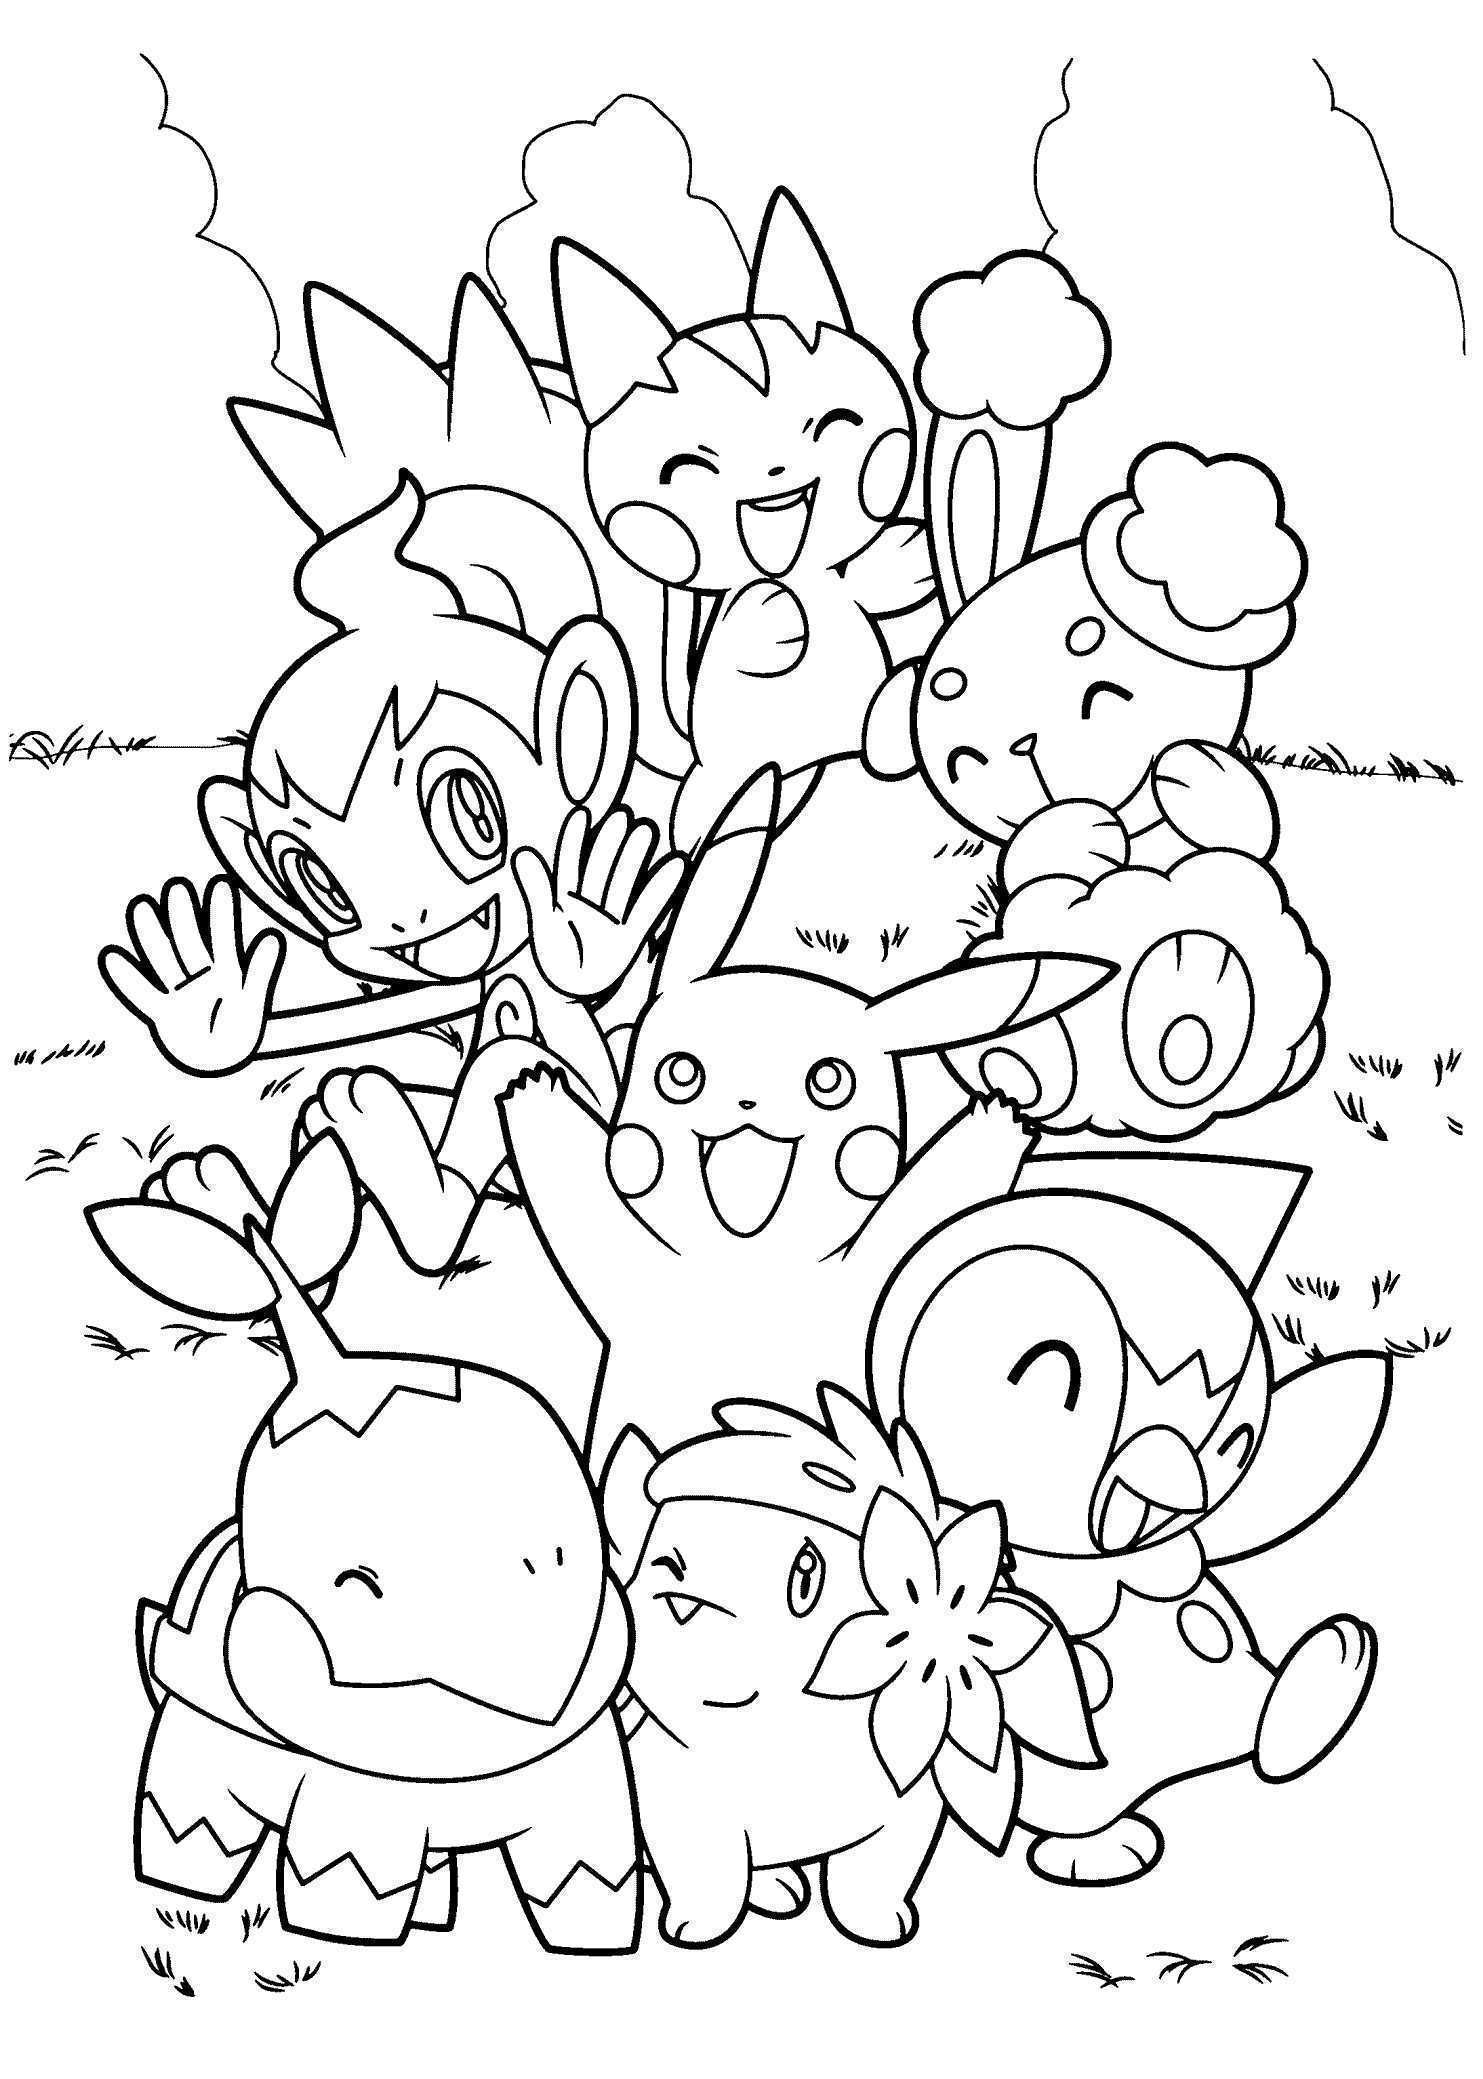 Top 75 Free Printable Pokemon Coloring Pages Line – Fun Time